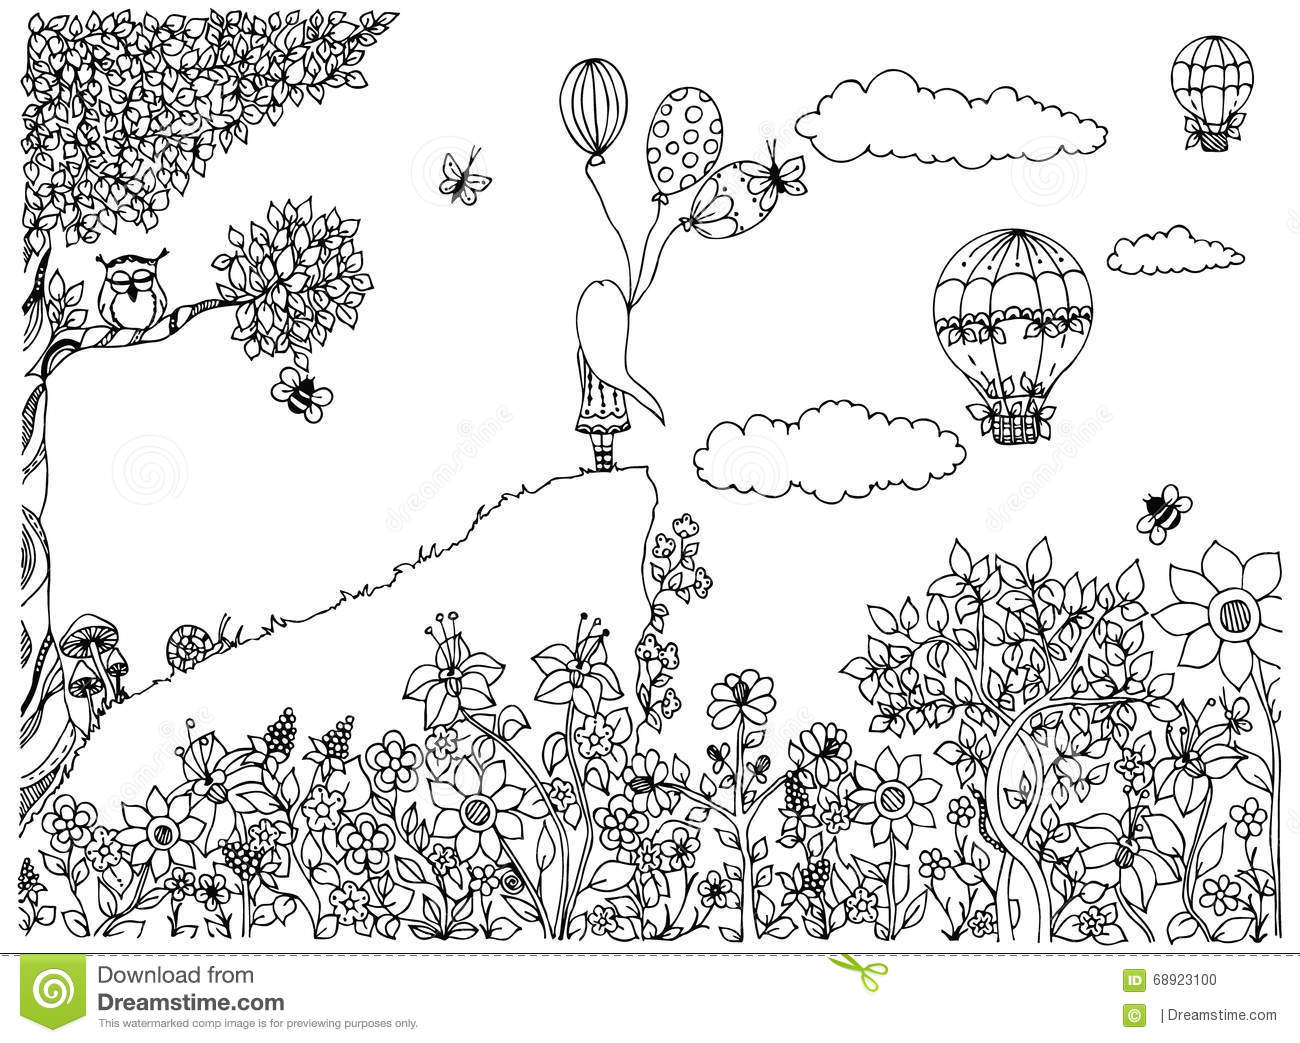 Download Vector Illustration Zentangl Girl On The Mountain With Balloons. Garden, Doodle Flowers, Clouds, Tree, Owl, Zenart Stock Vector - Illustration of beautiful, character: 68923100